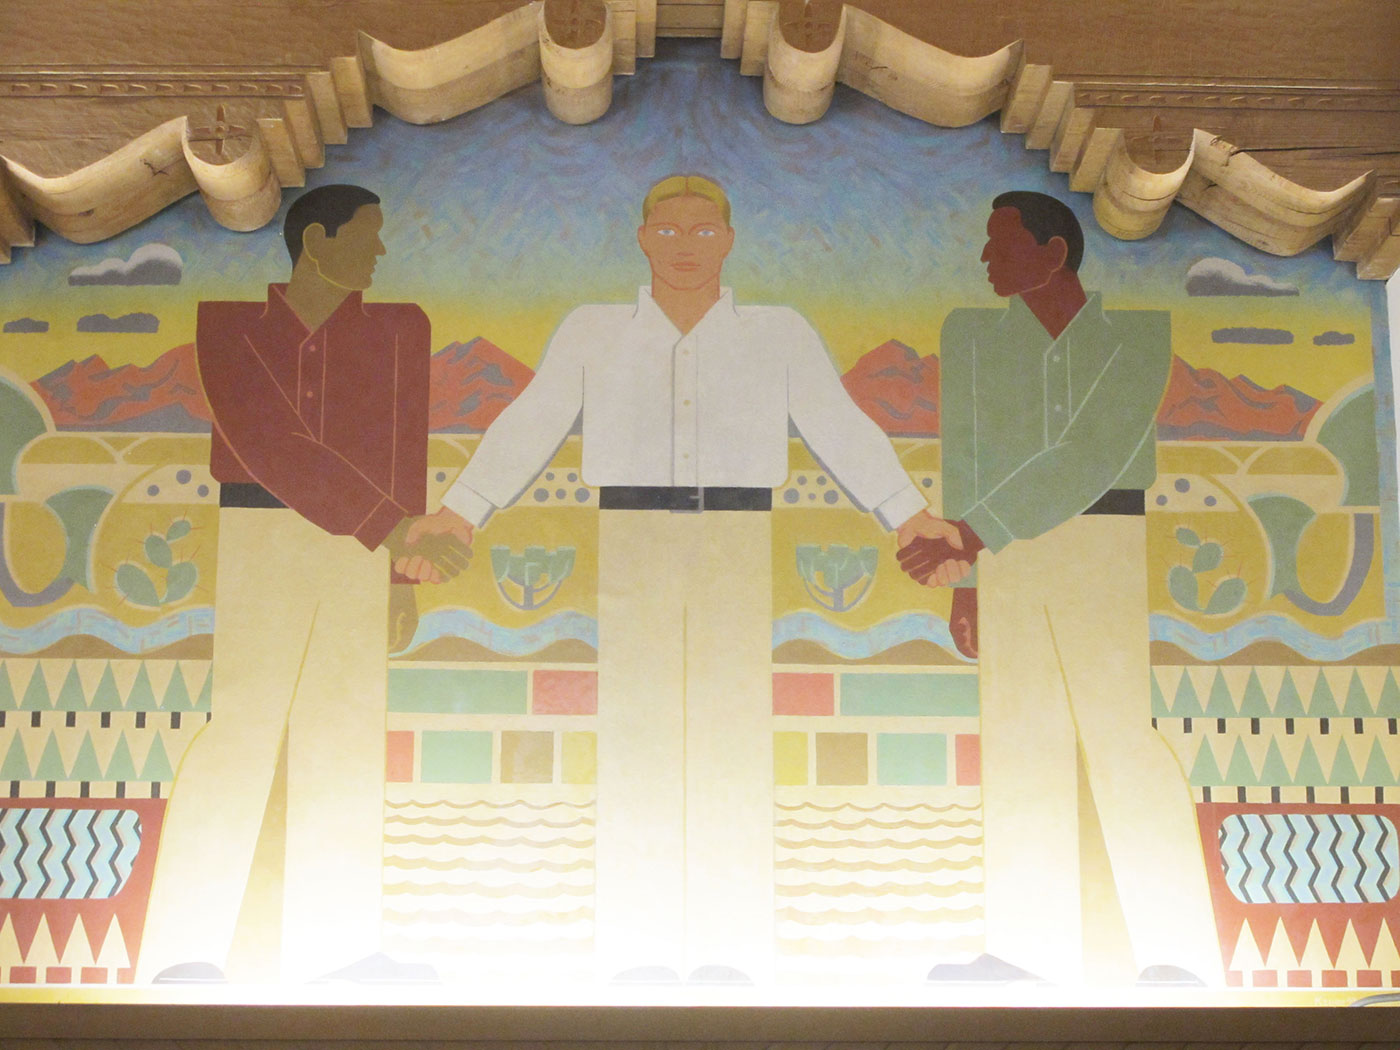 The final mural, which suggests that white people brought peace and cooperation to the region by civilizing it